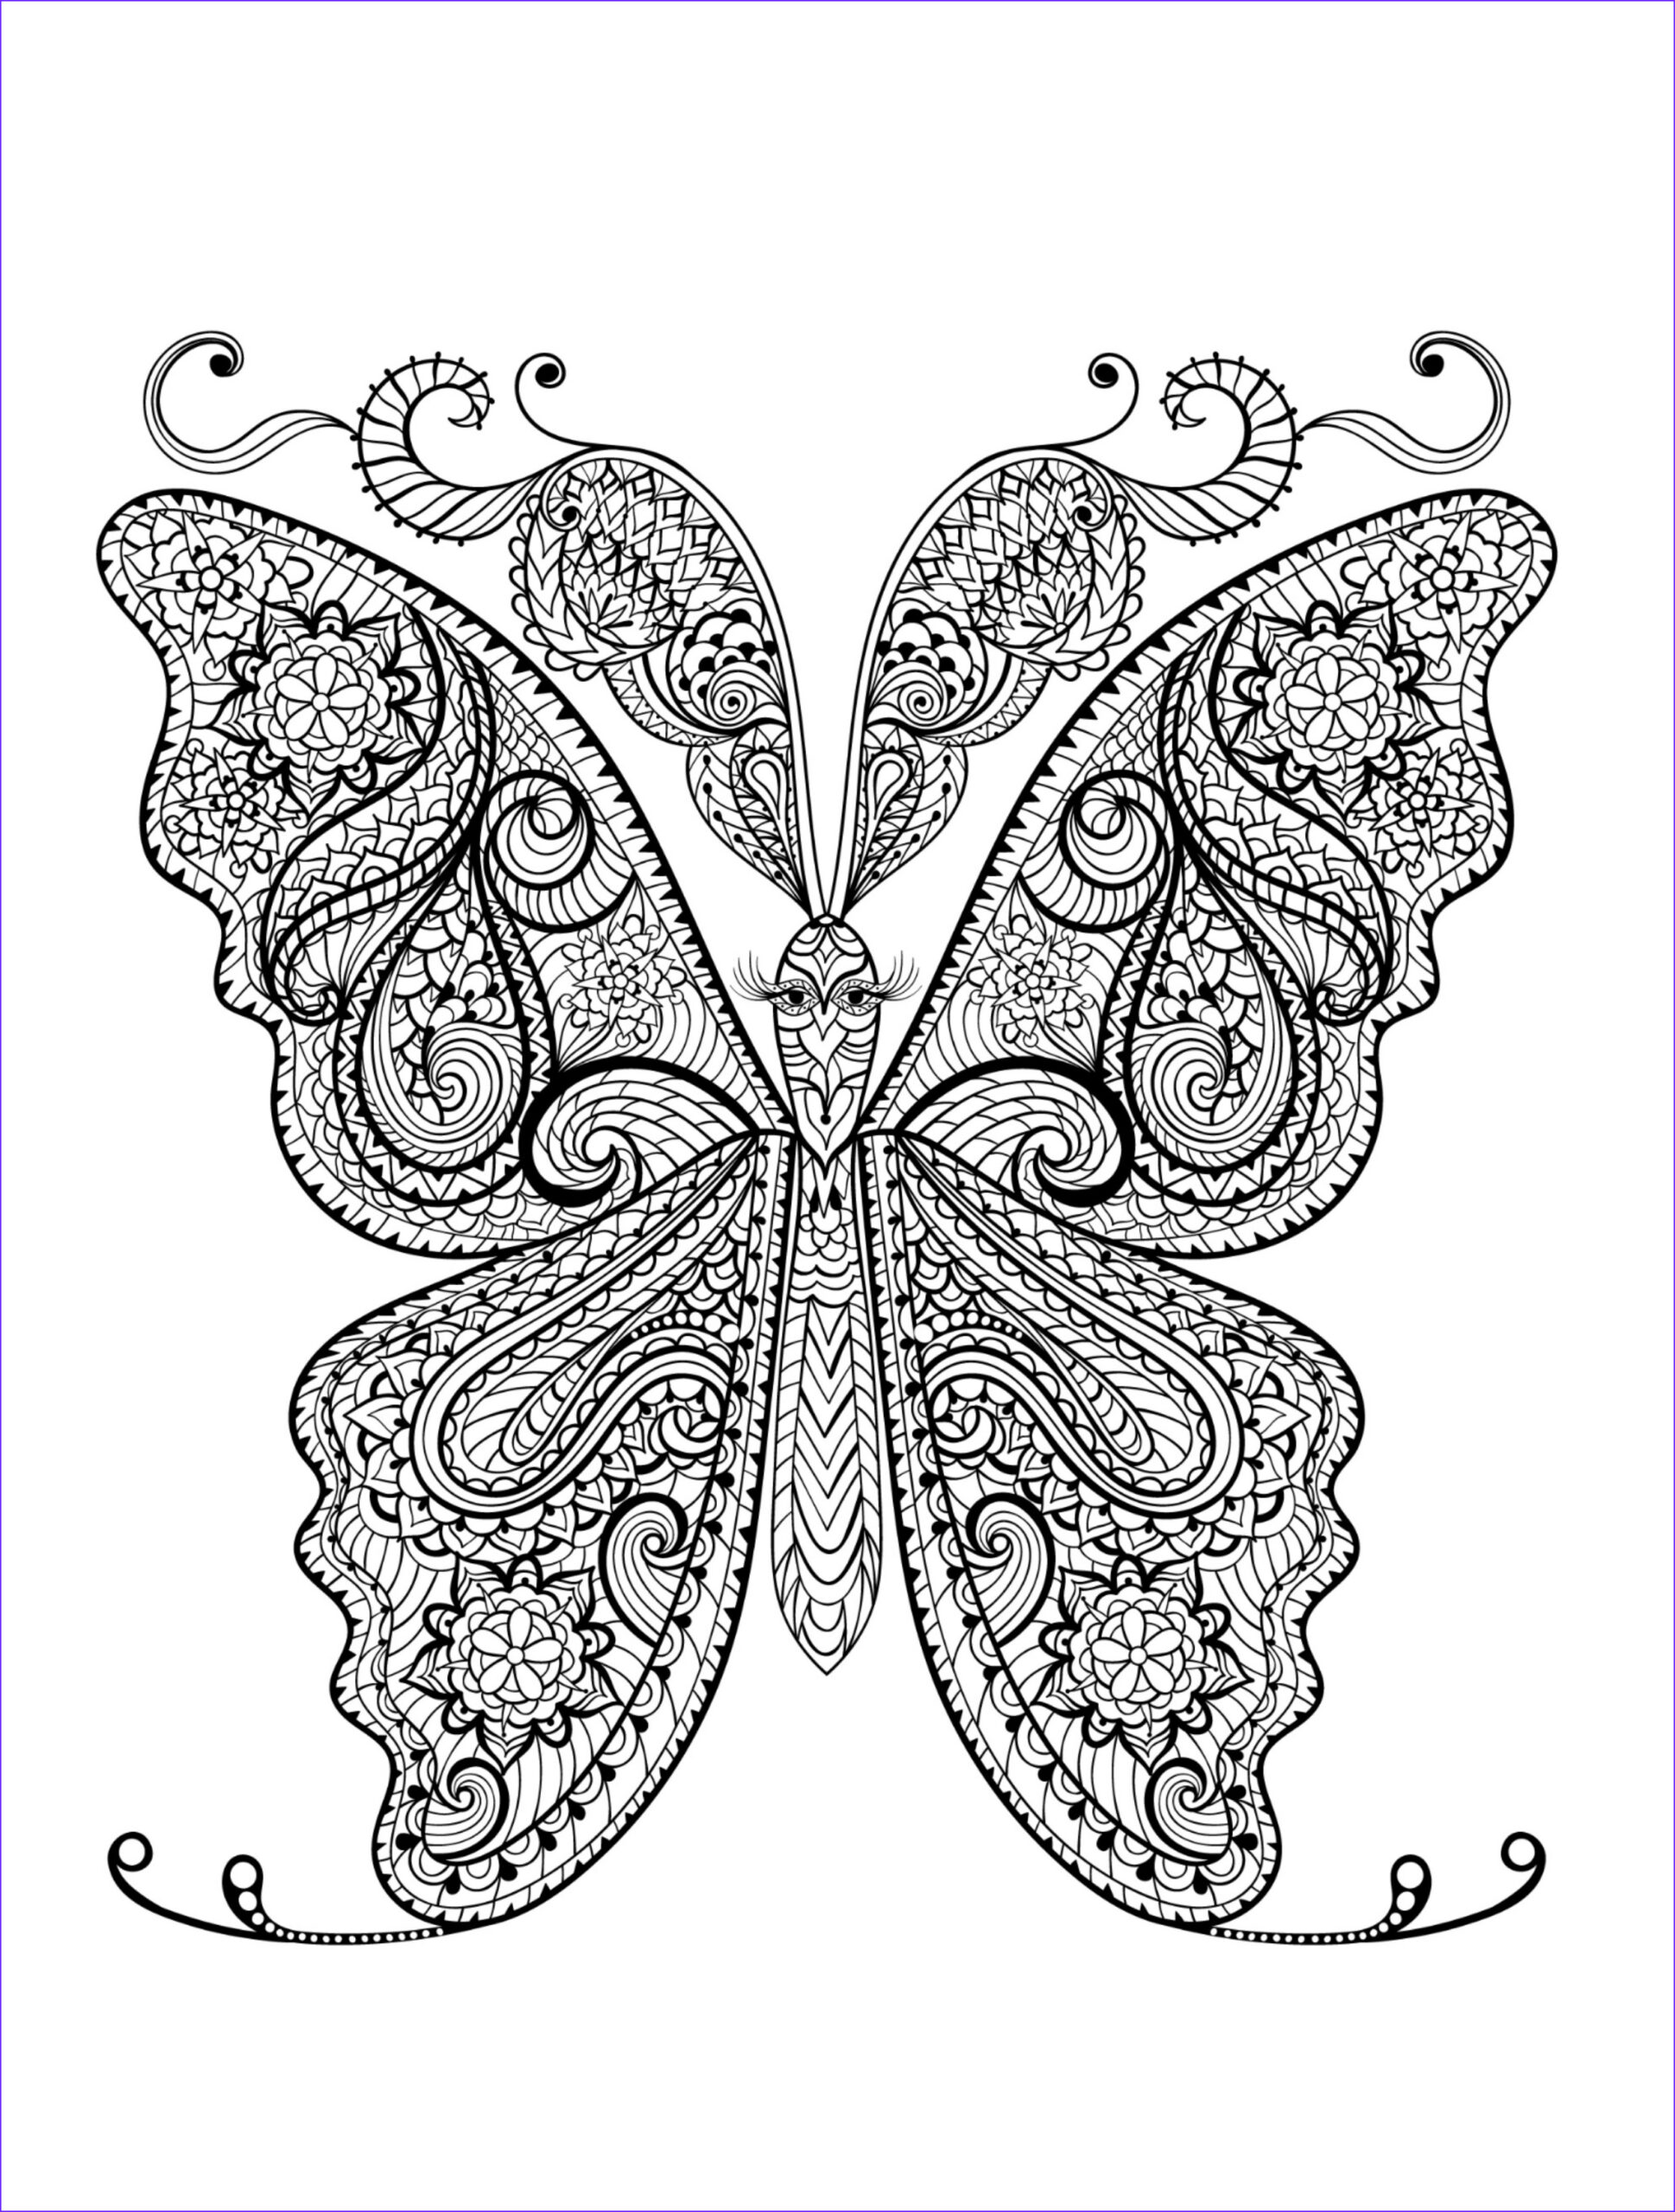 Free Adult Coloring Books Cool Photos Animal Coloring Pages for Adults Best Coloring Pages for